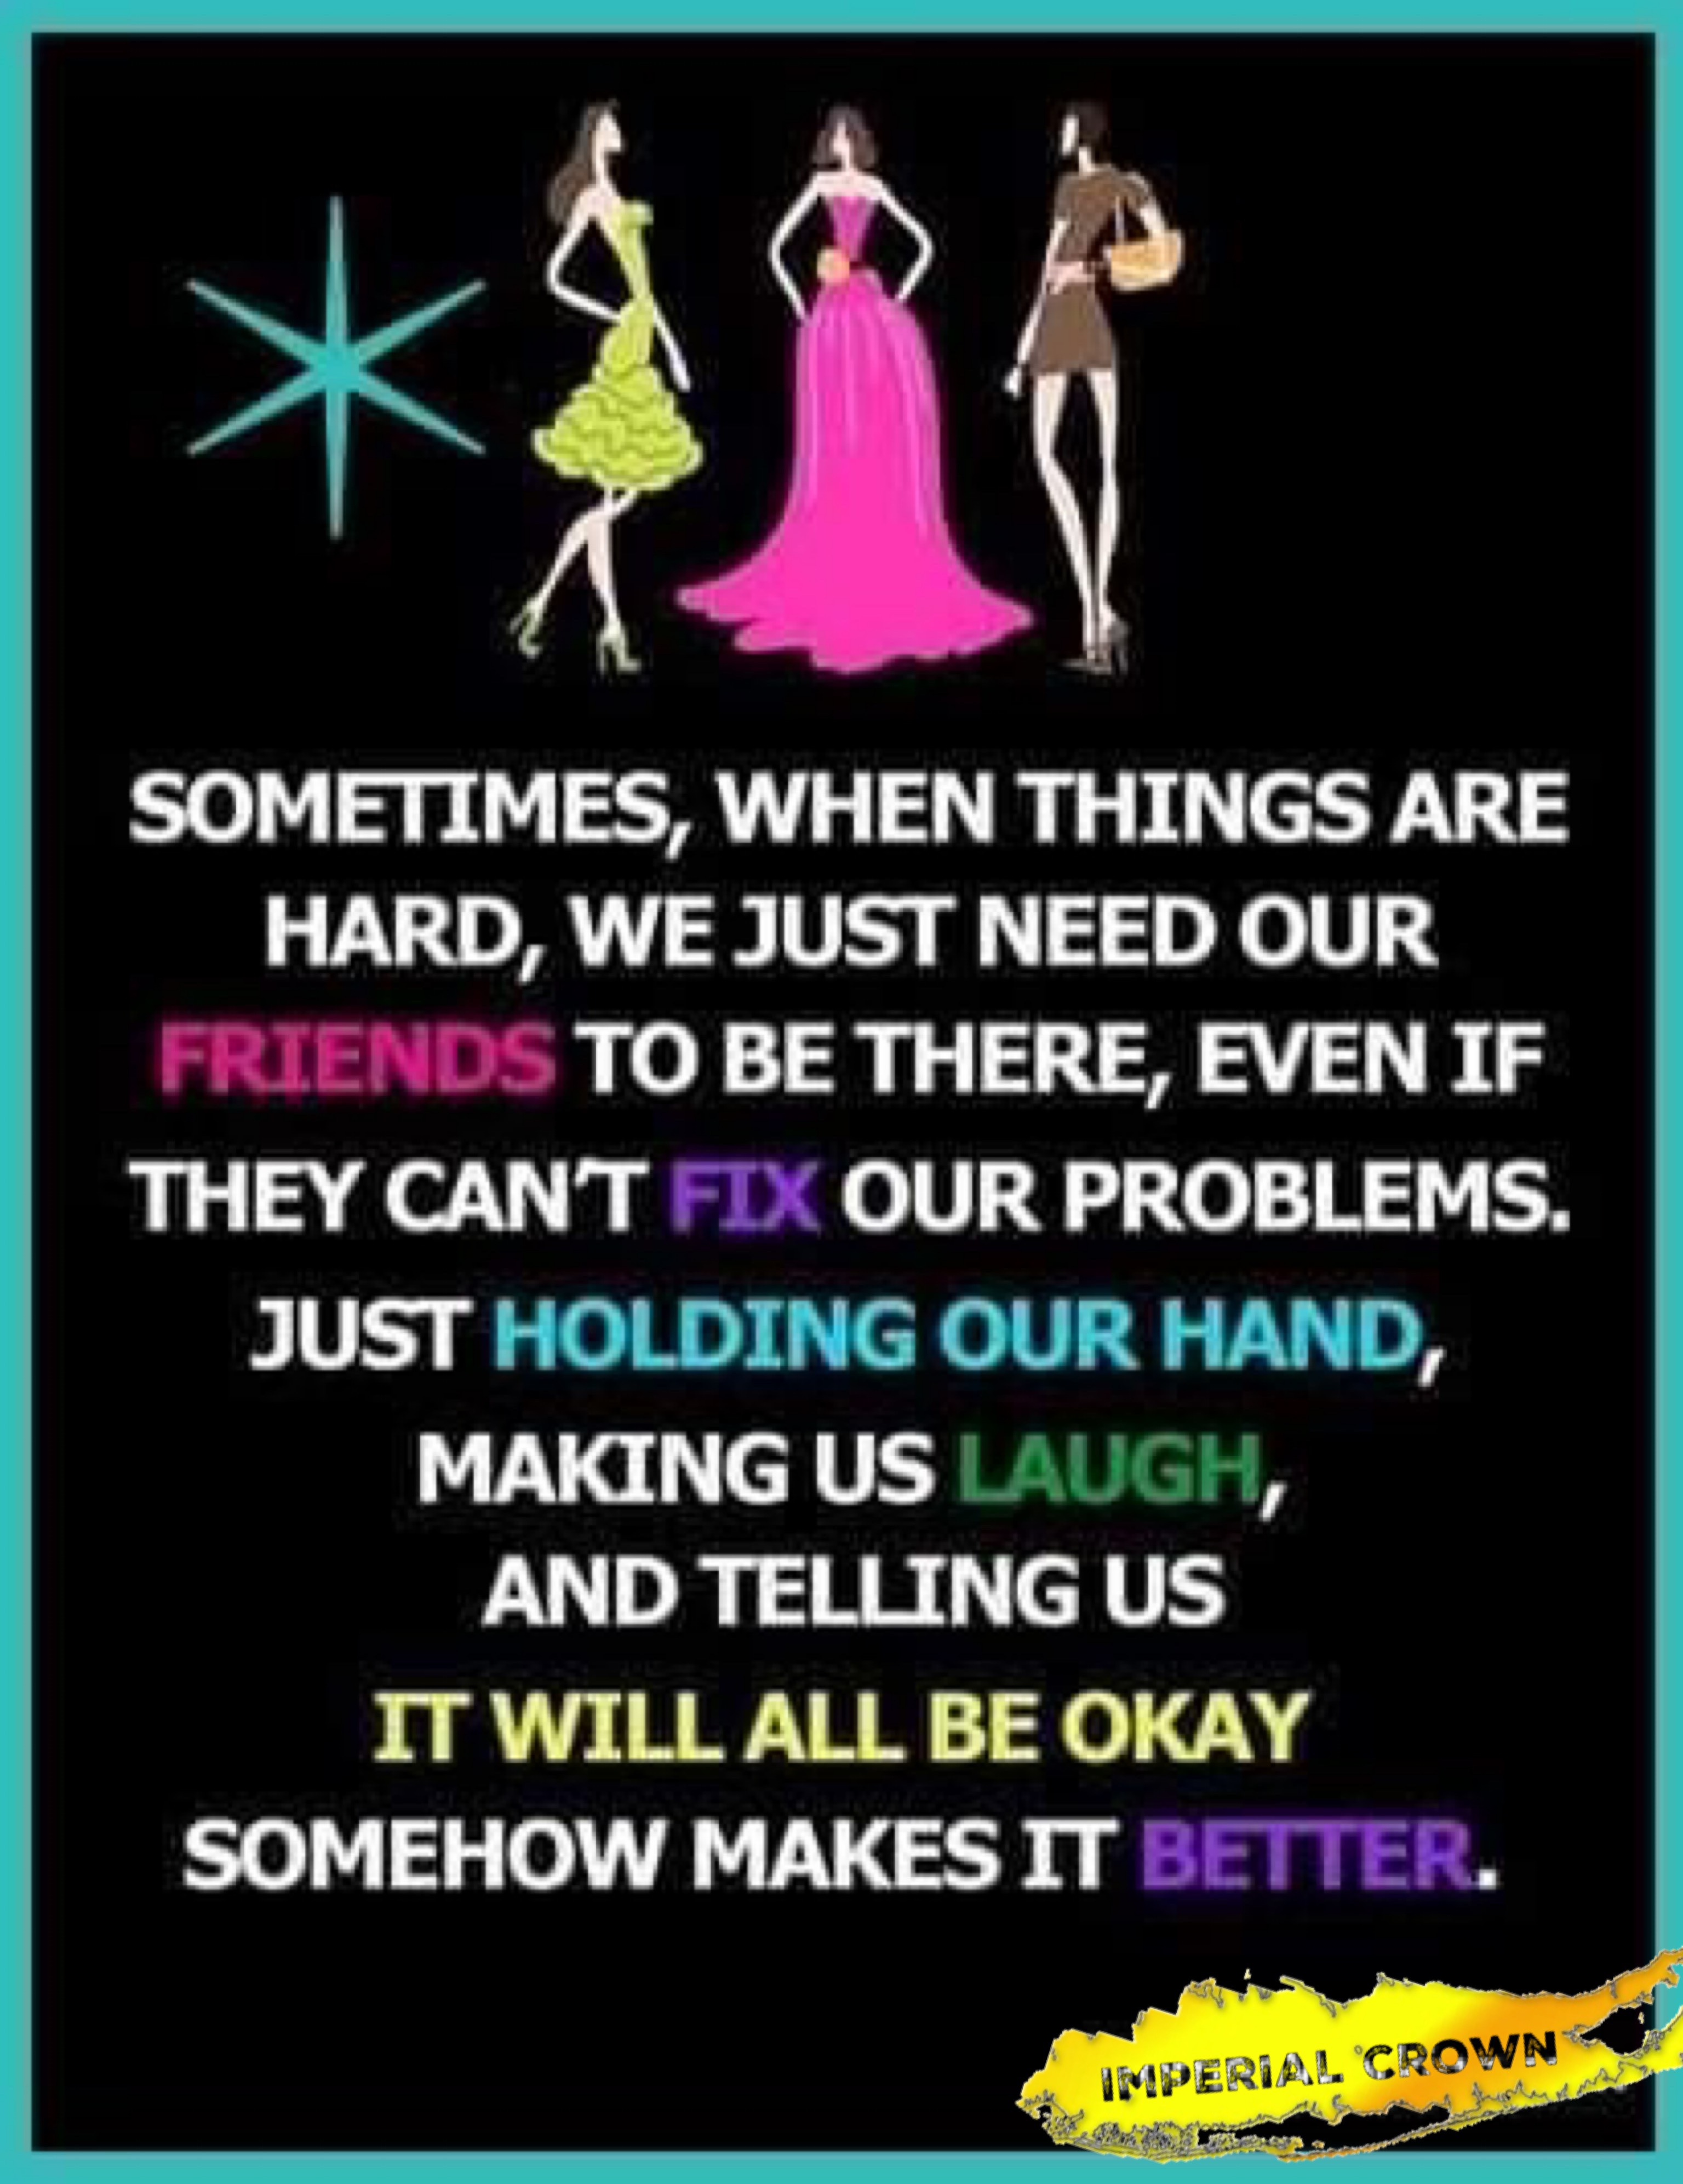 Sometimes when things are hard we just need our friends to be there even if they can't fix our problems